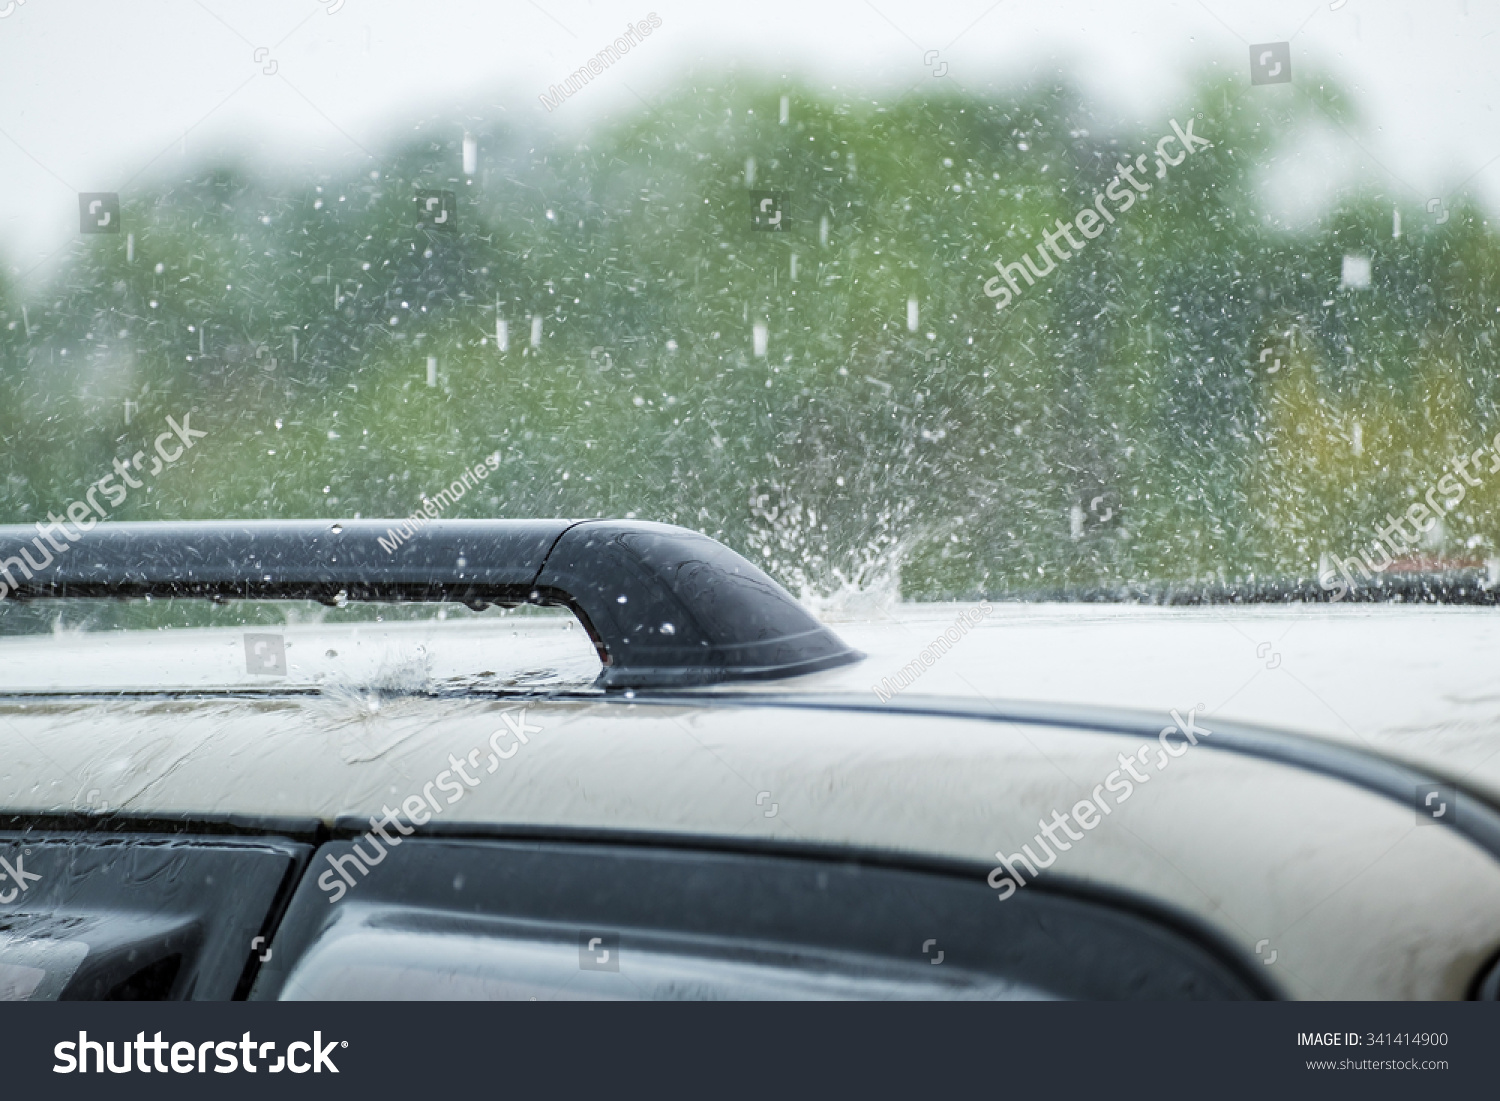 Raindrop Fall On Roof Car Stock Photo 341414900 Shutterstock